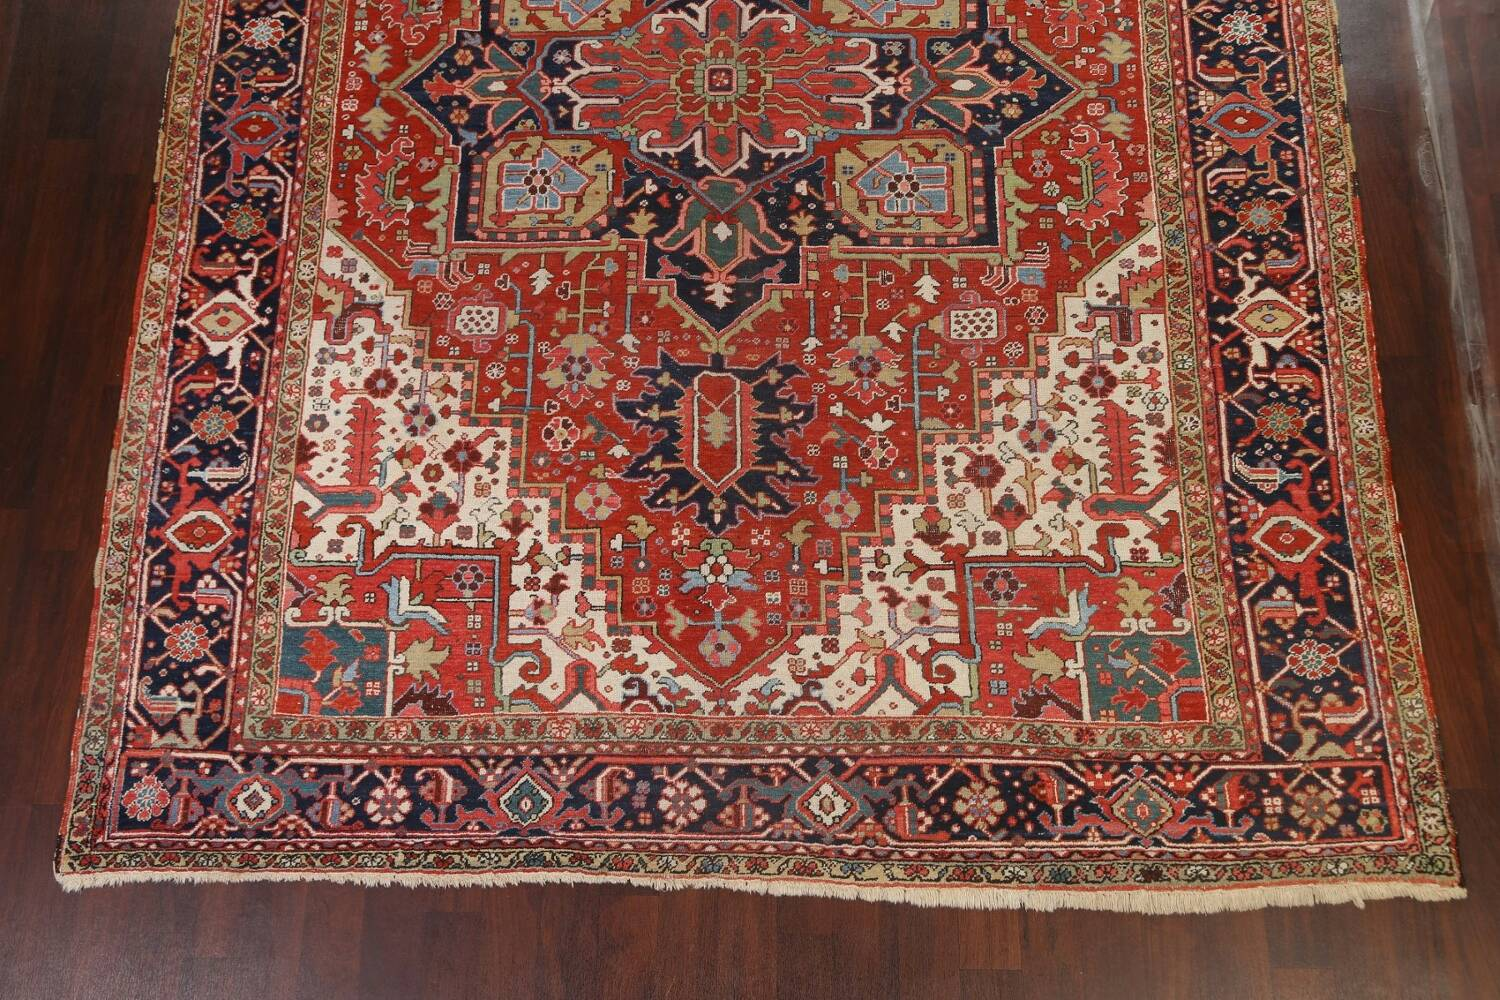 Pre-1900 Antique Vegetable Dye Heriz Serapi Persian Area Rug 10x13 image 8